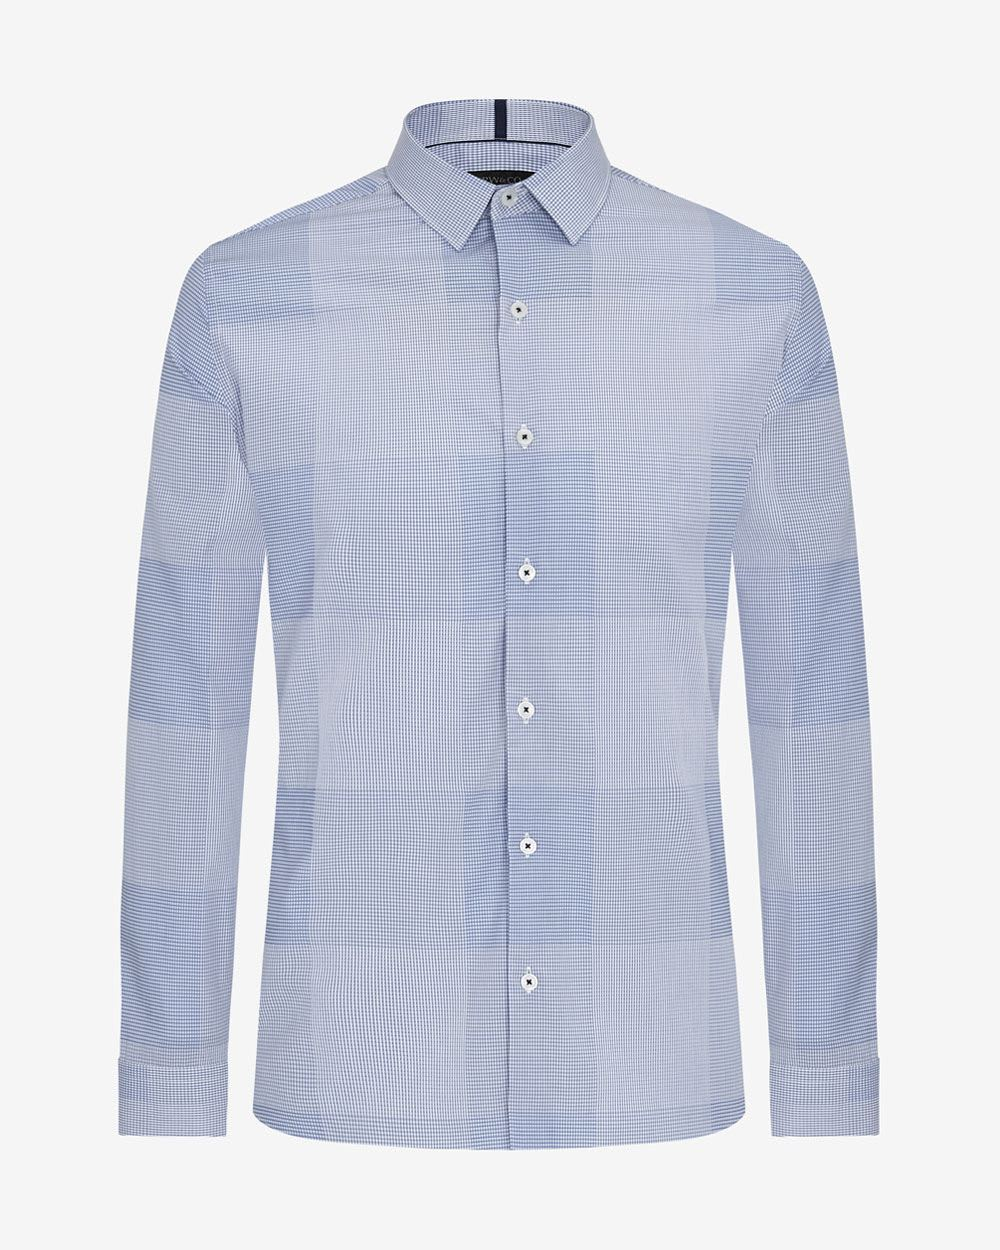 Tailored fit check shirt rw co for Tailored fit shirts meaning